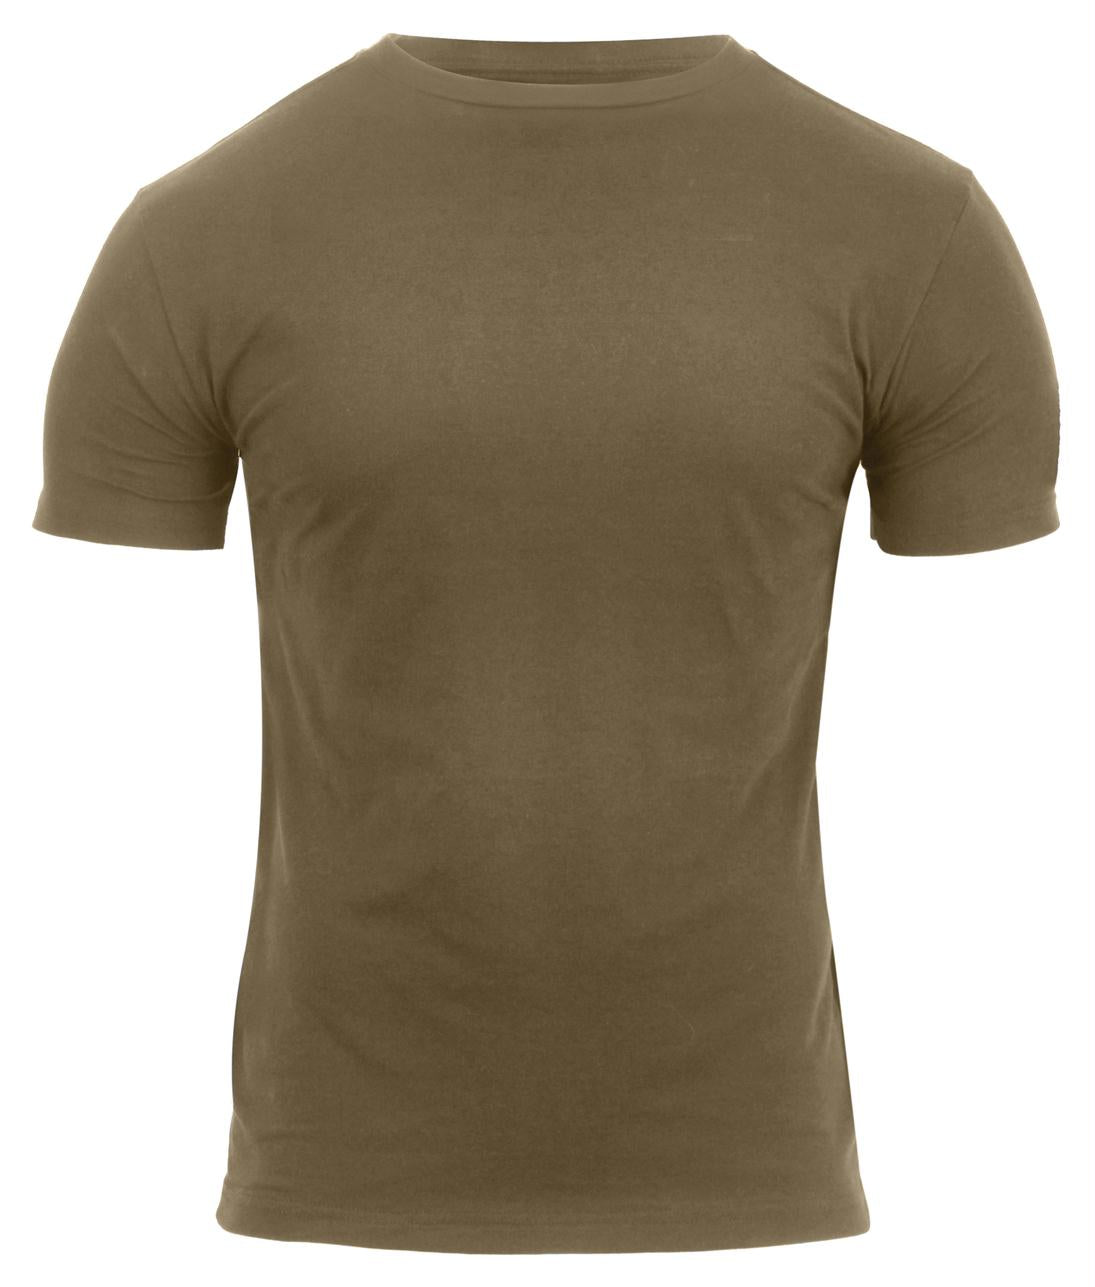 Rothco Athletic Fit Solid Color Military T-Shirt - Coyote Brown / S